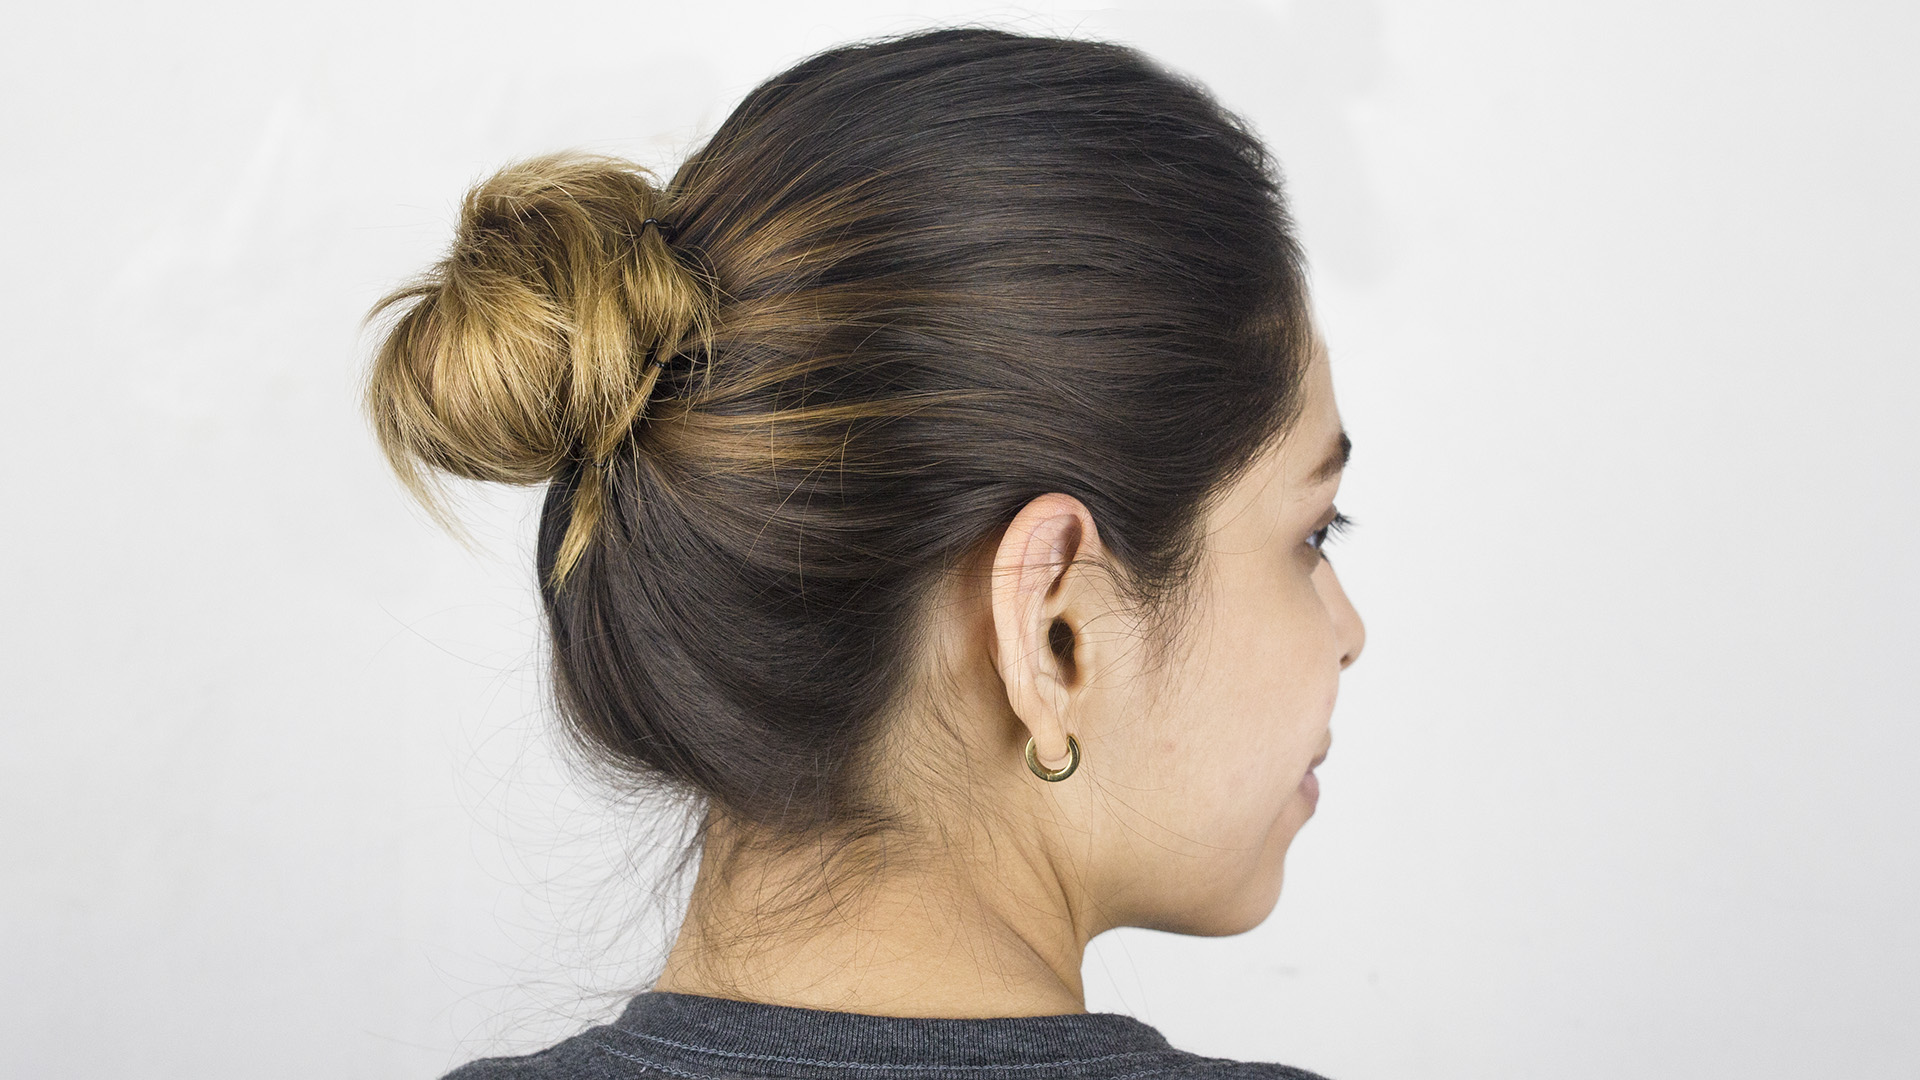 How to Make a Simple Bun in Hair 9 Steps with